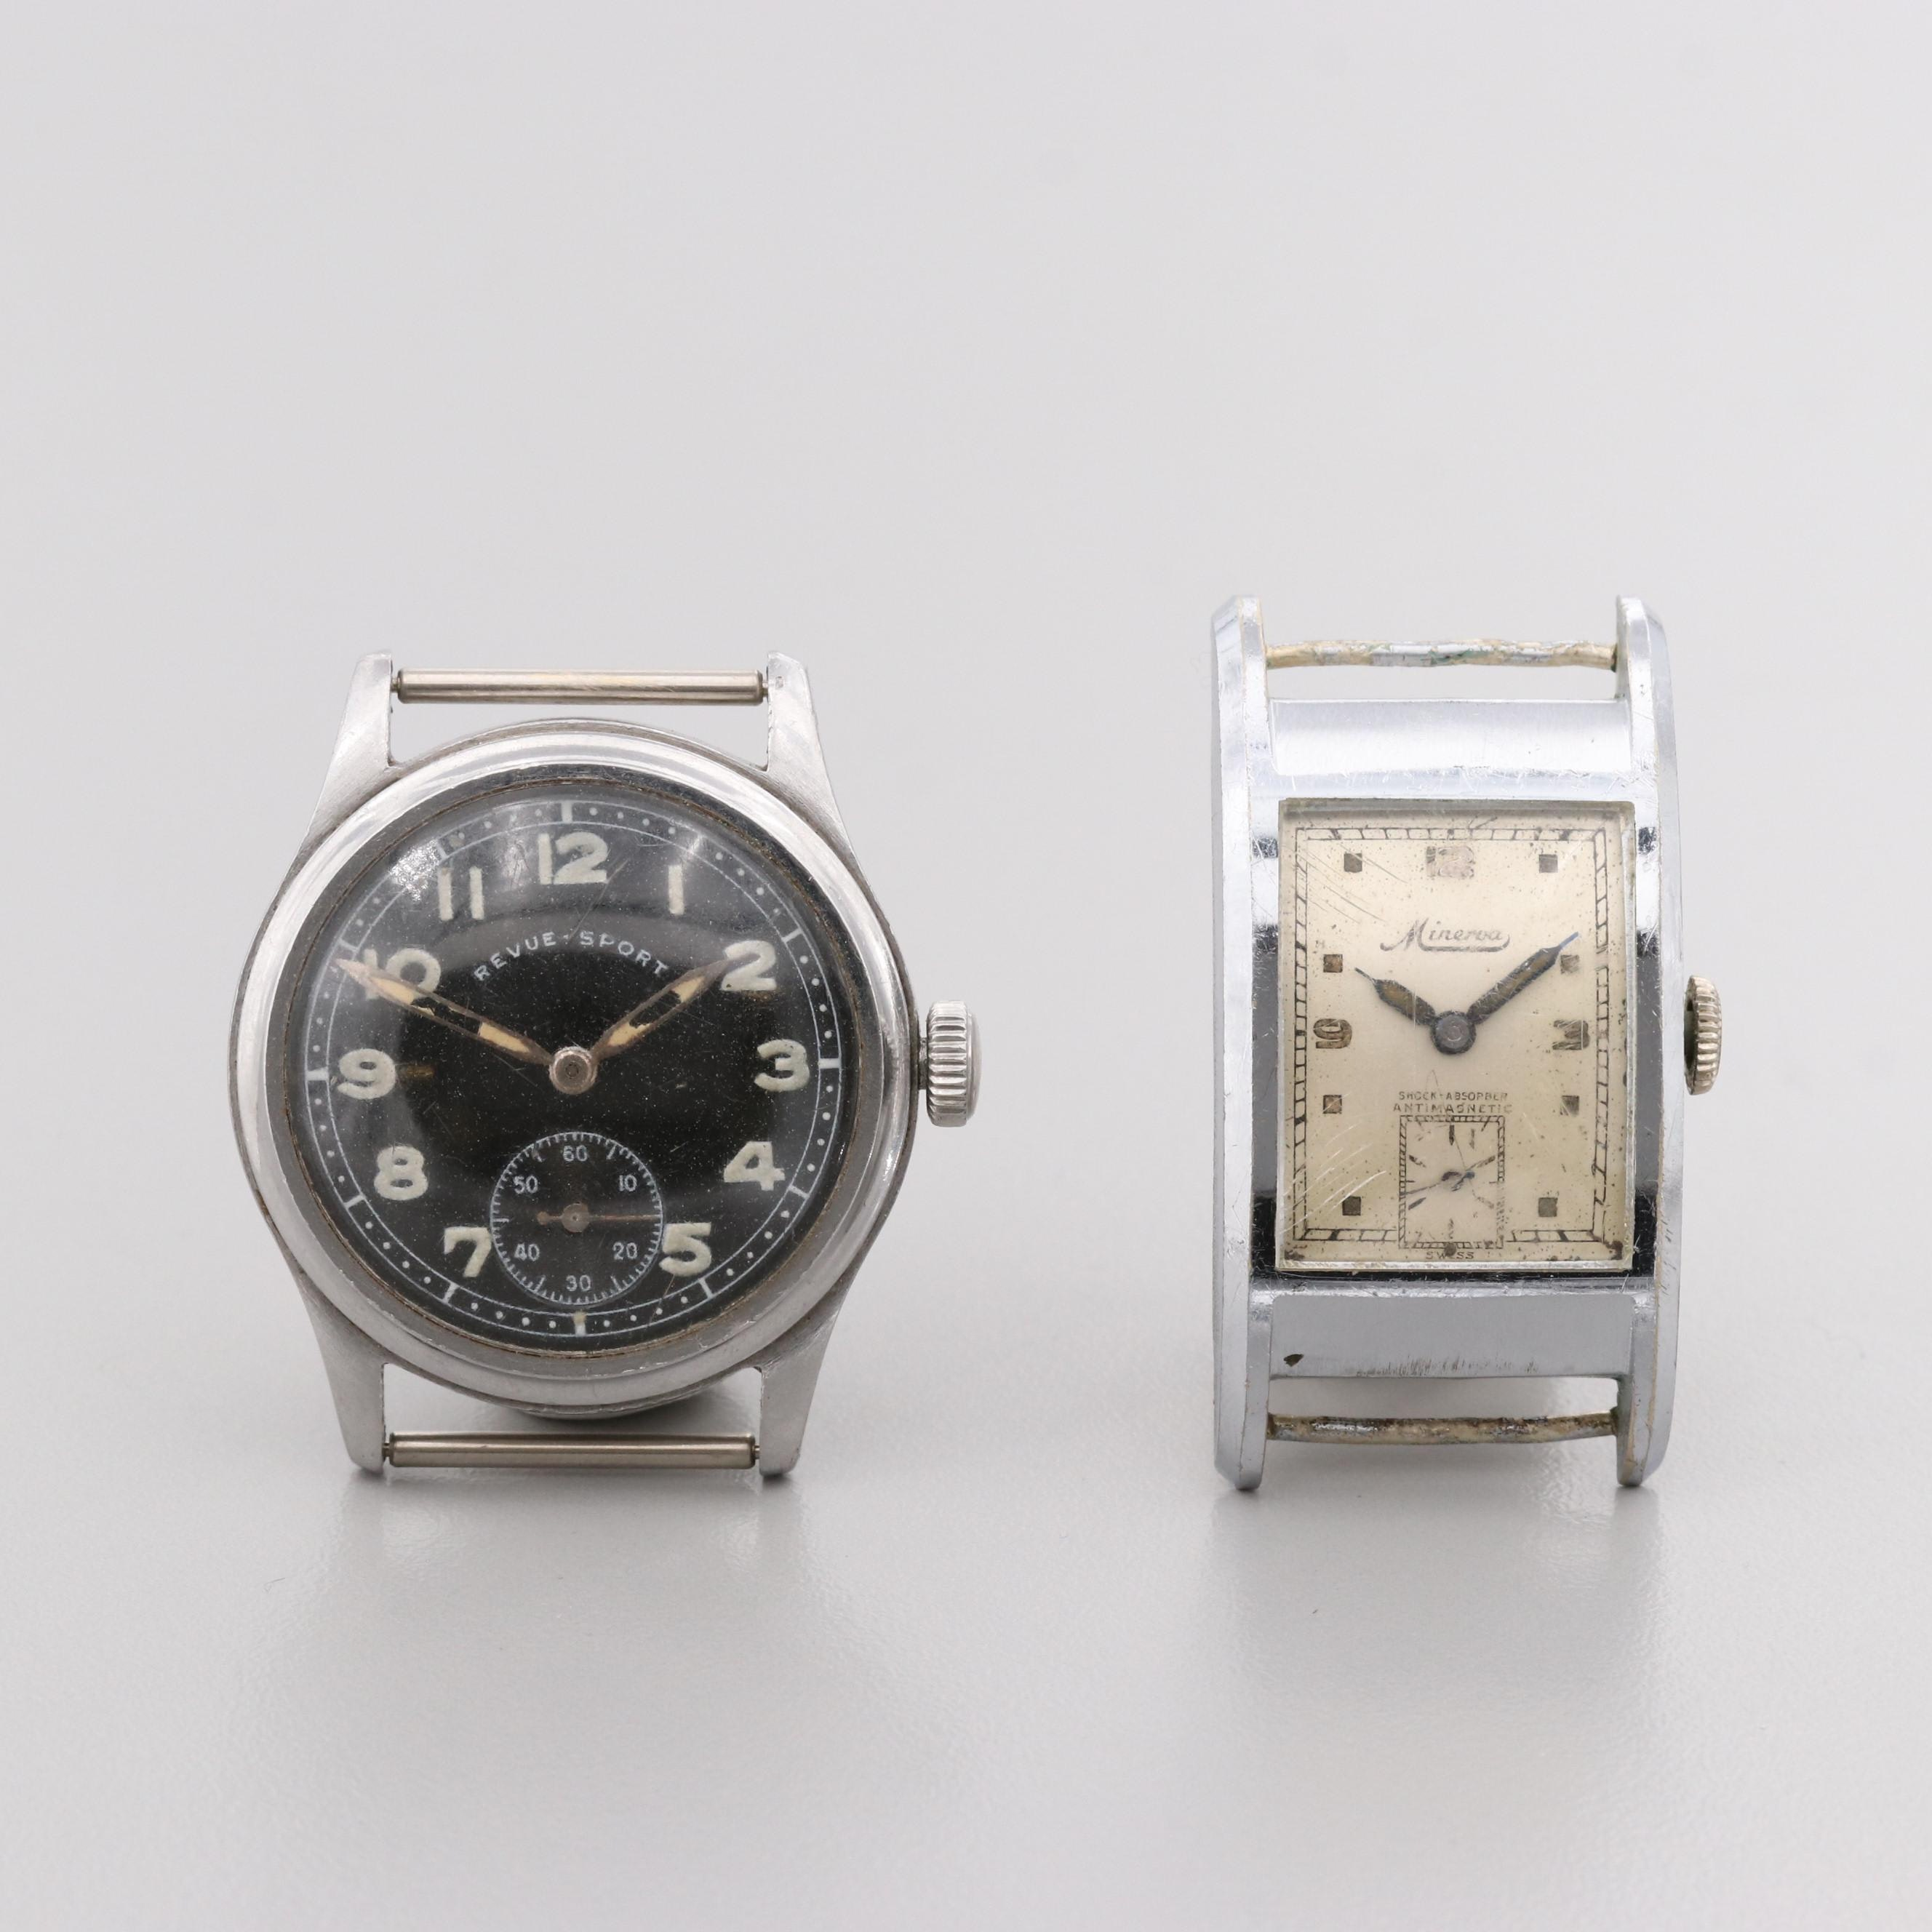 Assorted Vintage Metal and Stainless Steel Stem Wind Wristwatch Time Pieces